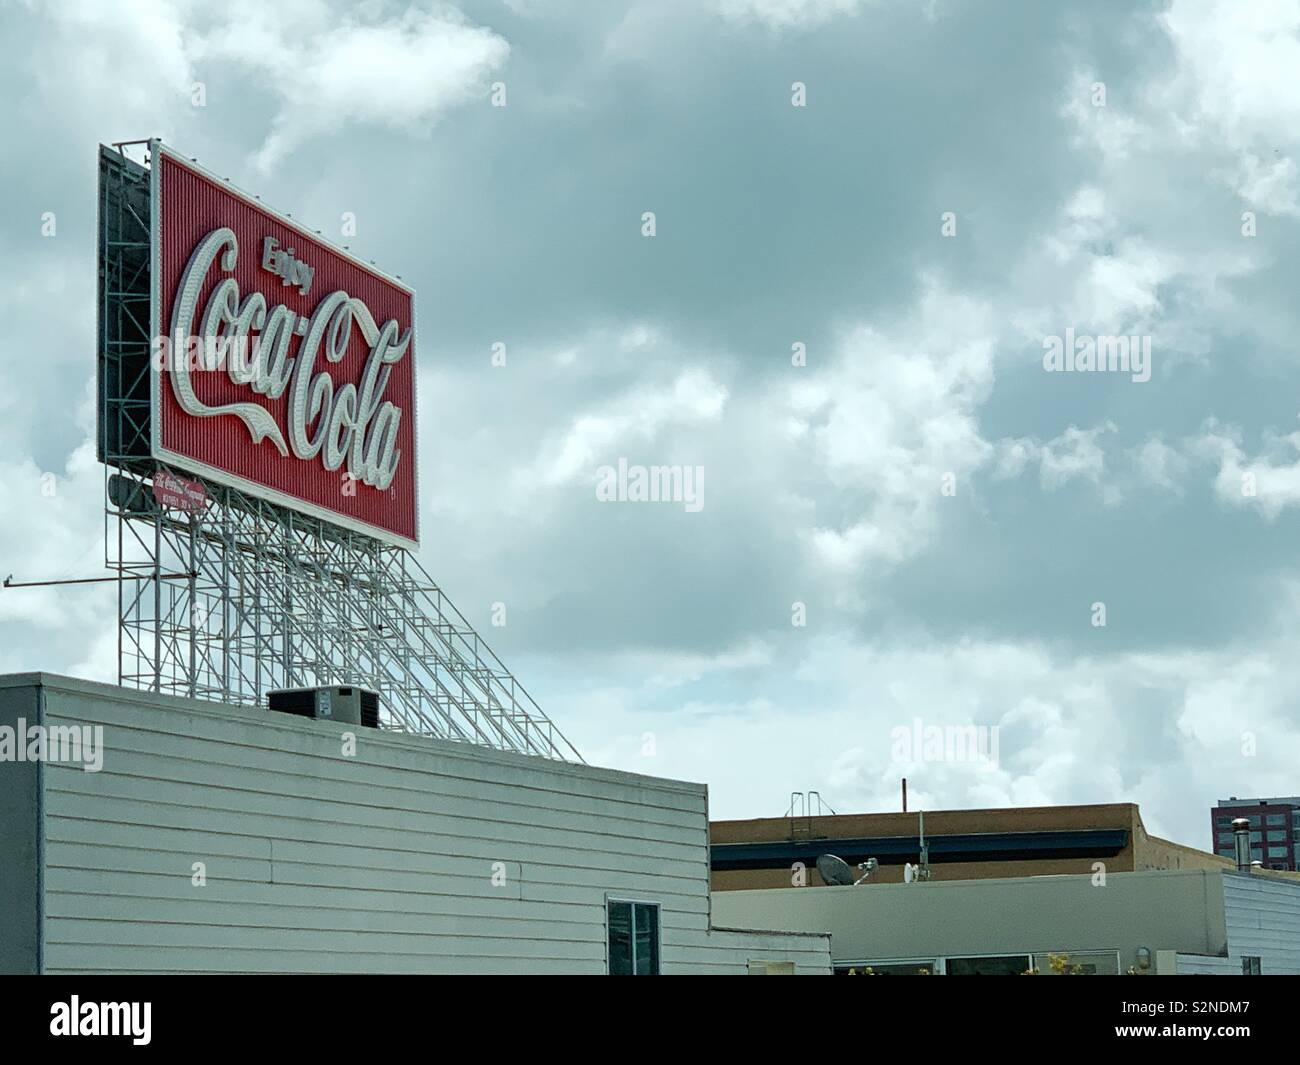 Pepsi Cola Billboard Stock Photos & Pepsi Cola Billboard